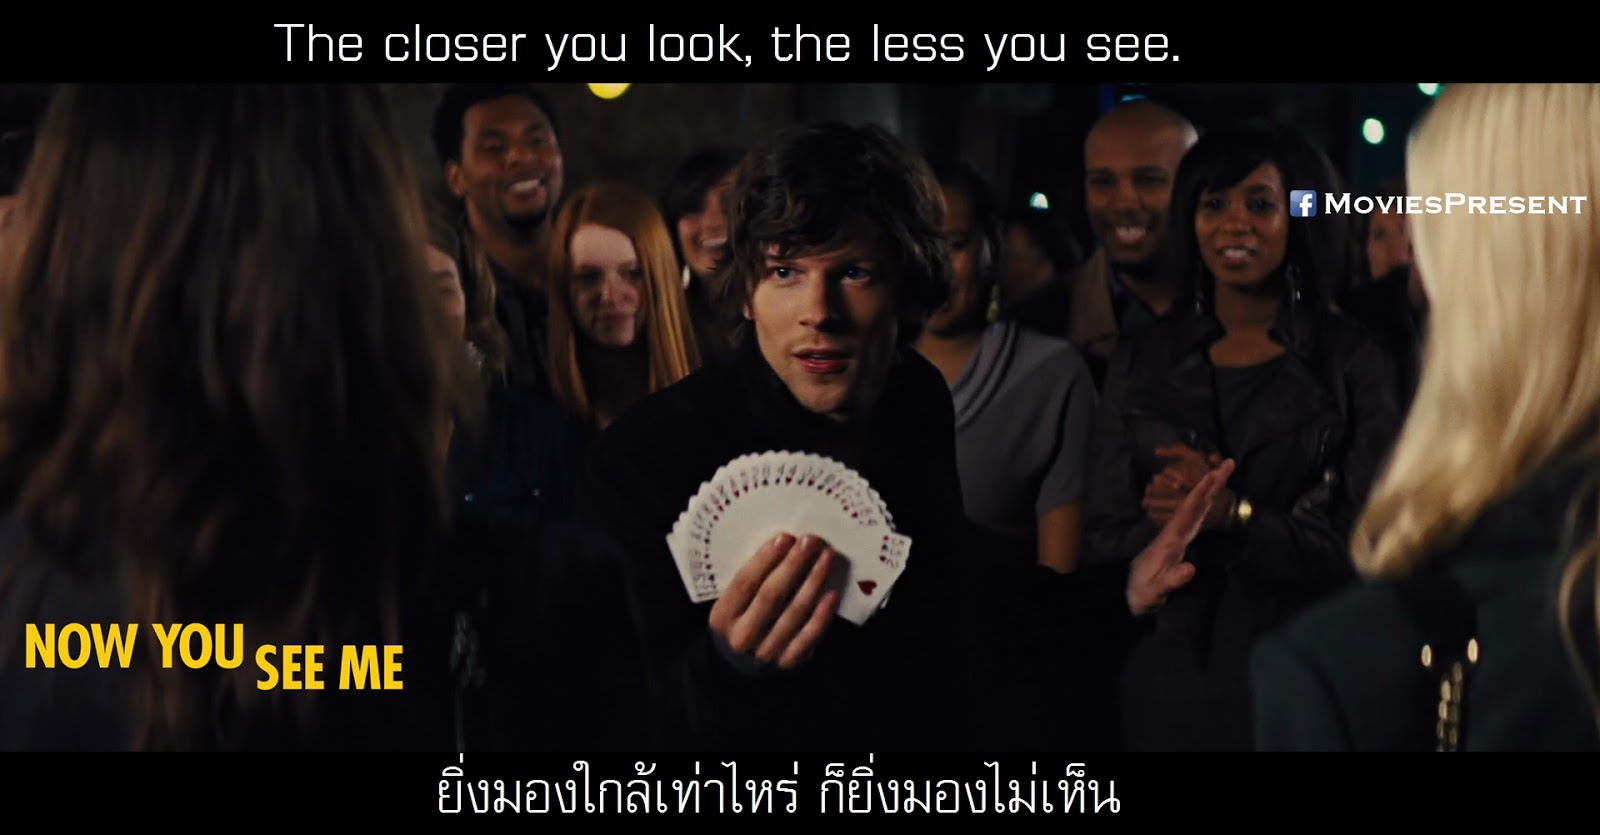 Now You See Me Quotes Now You See Me Quotes Captivating Quotes Of Now You See Me